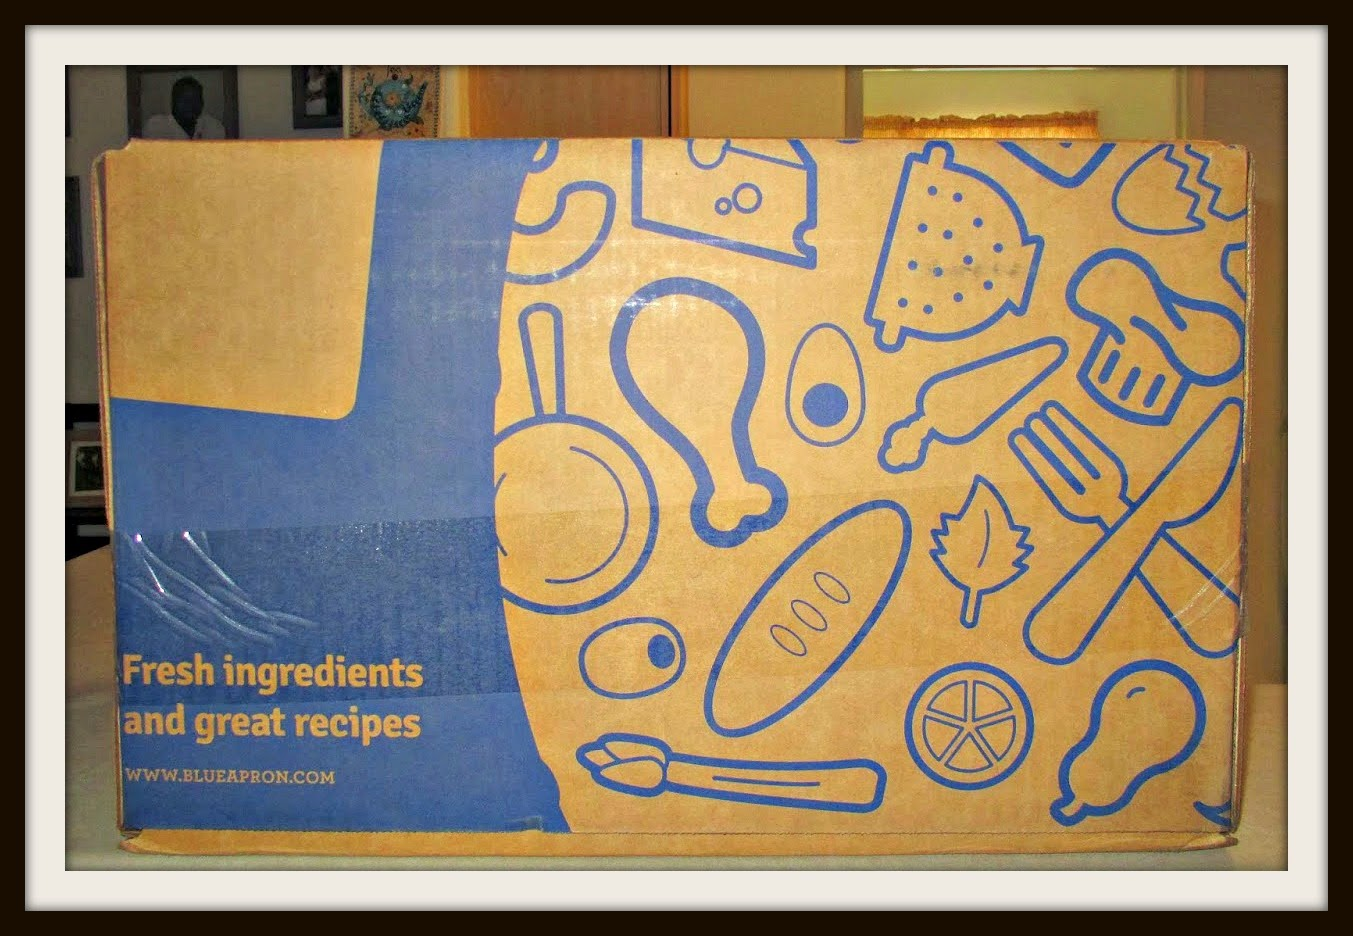 Blue apron yellow grits - This Blue Apron Box Was Delivered By Ontrac You Can Read About Our Previous Blue Apronshere